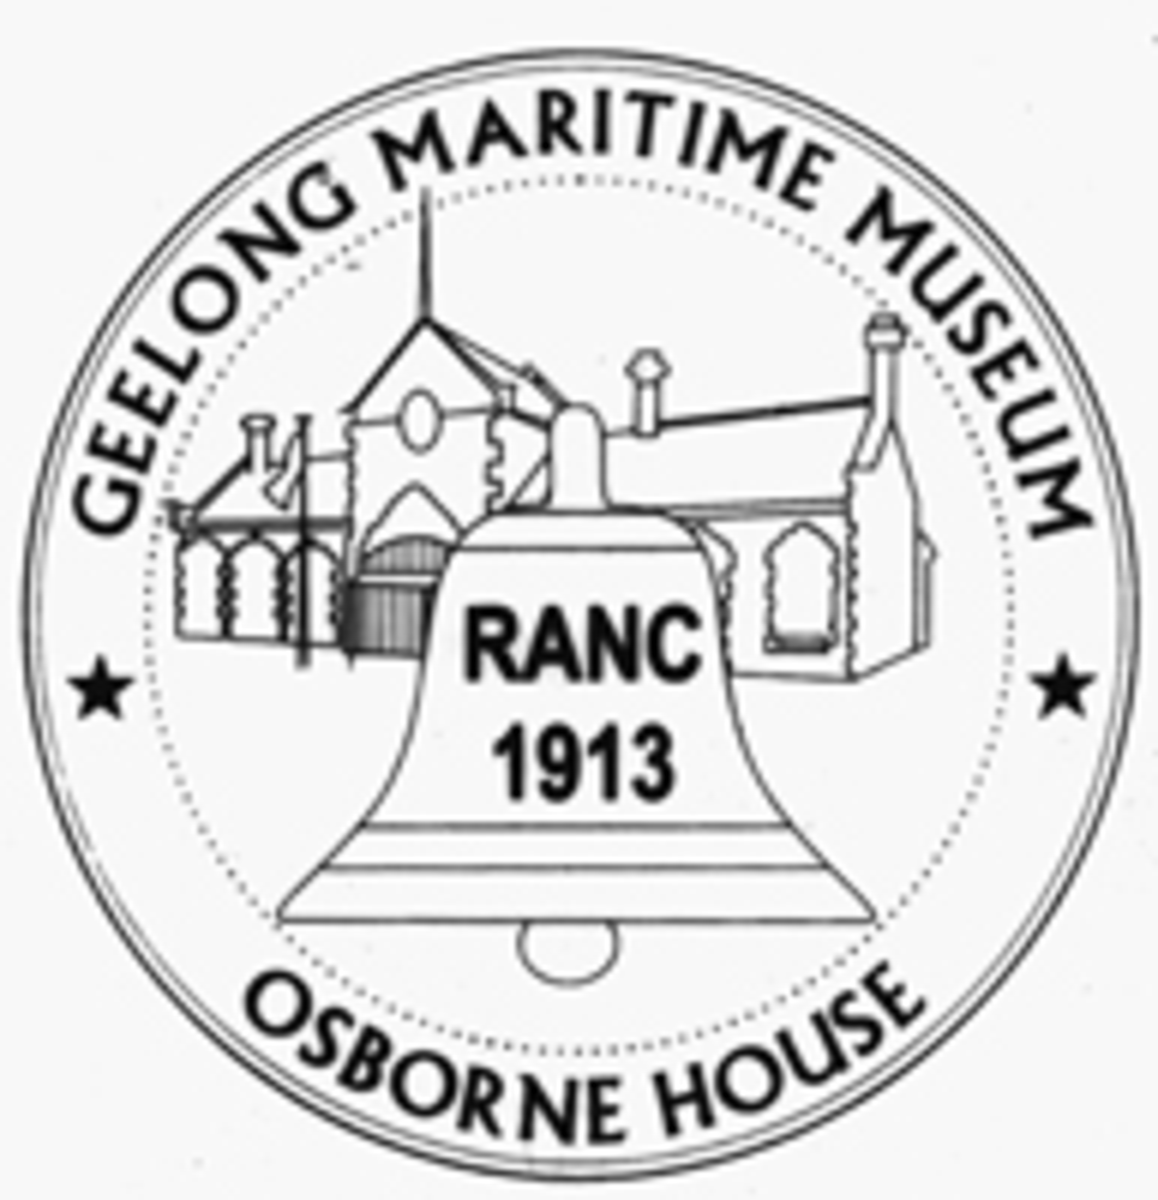 Geelong Naval And Maritime Museum